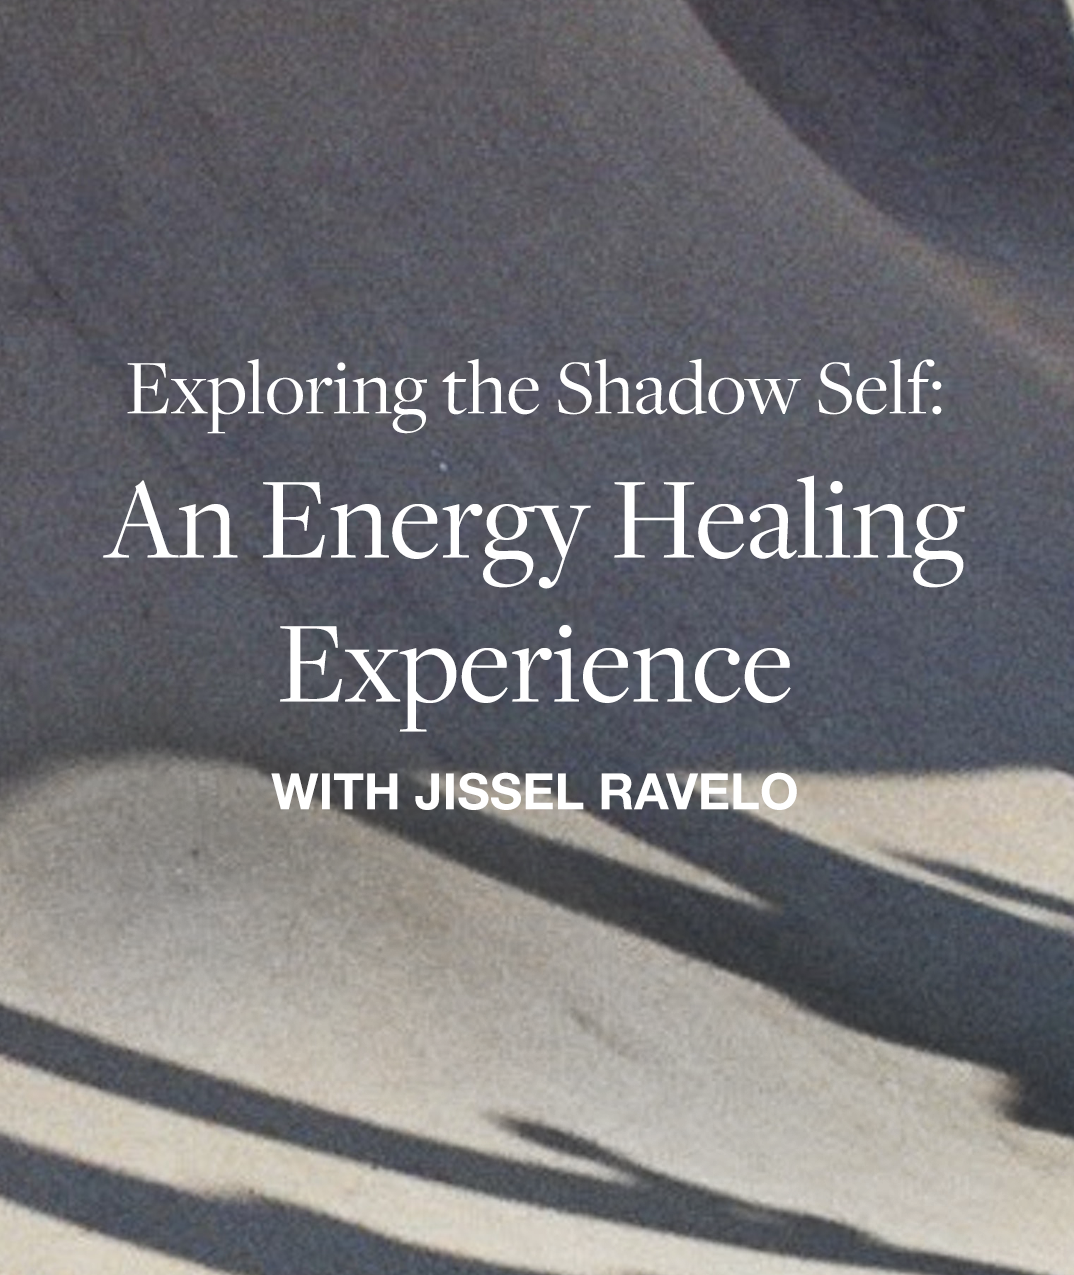 Exploring the Shadow Self_ An Energy Healing Experience with Jissel Ravelo.png